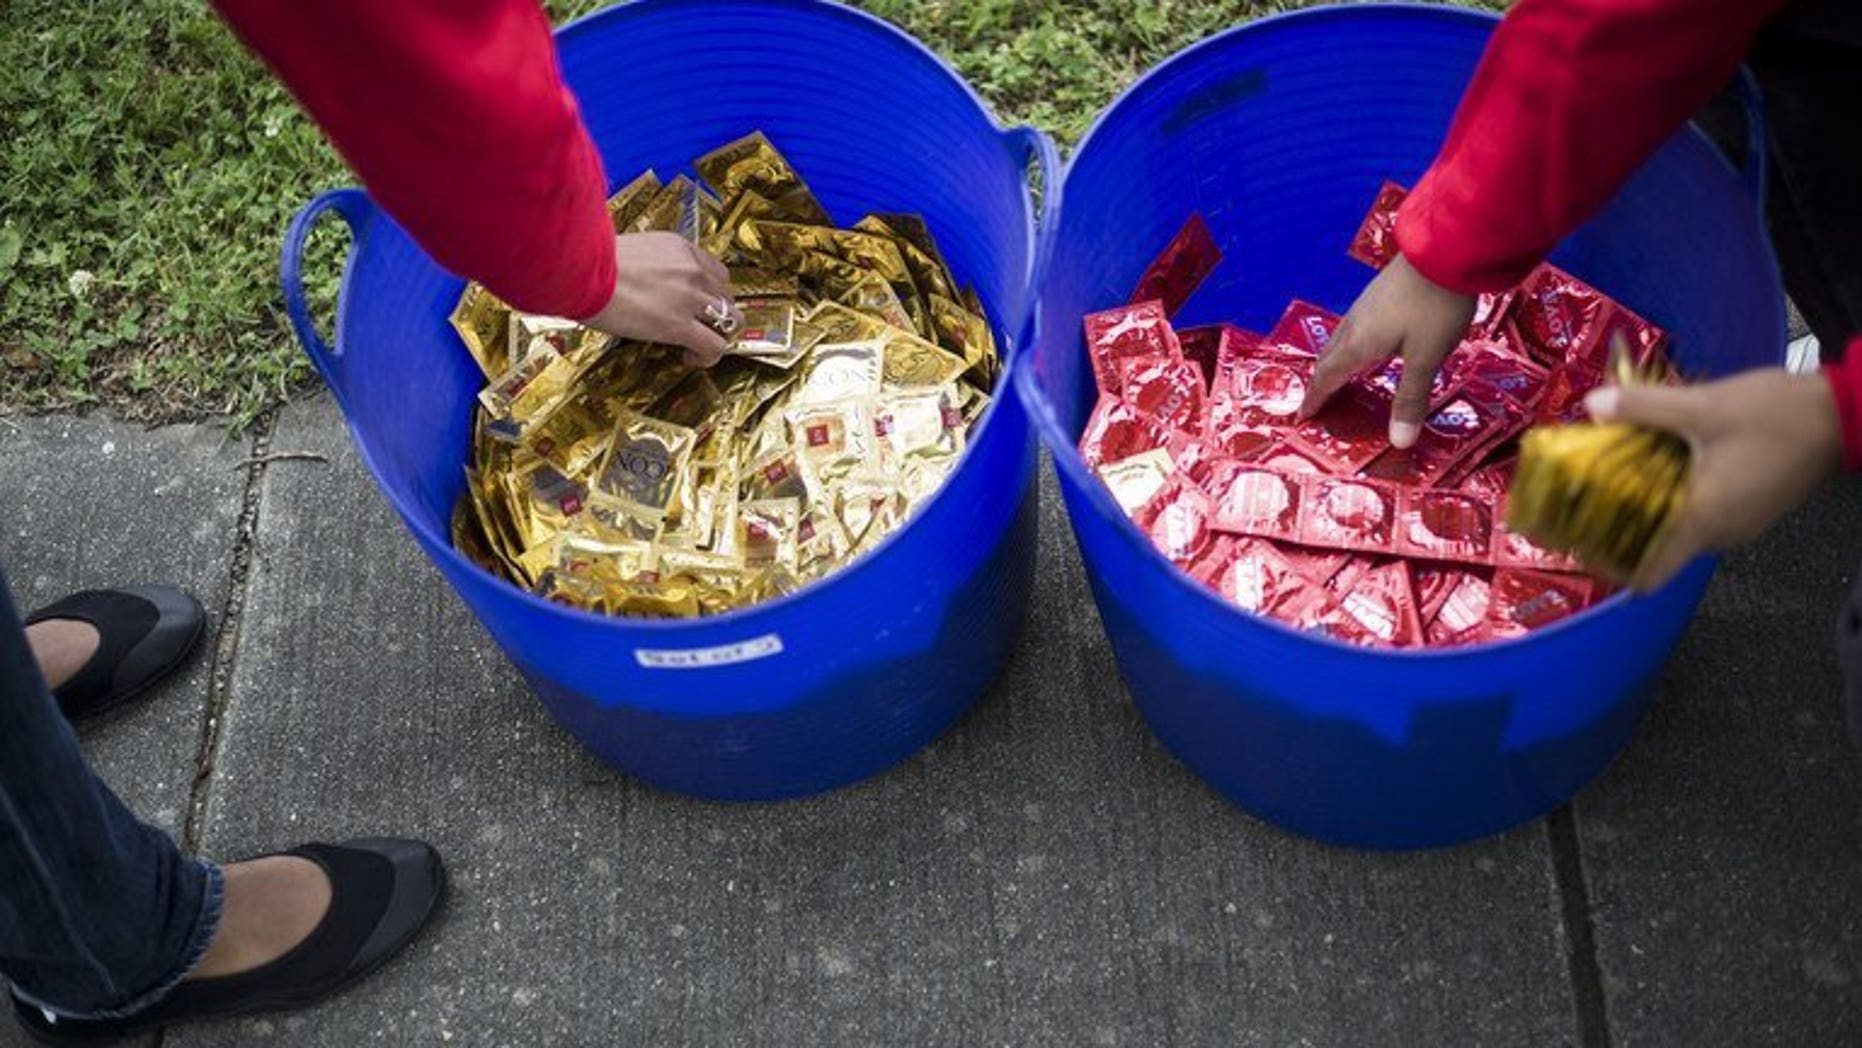 Reduced donor funding has forced the Namibian government to shrink the supply of free condoms, a government report said Tuesday, threatening the country's fight against sexually transmitted diseases. A ministry of health and social services study seen by AFP shows free condom distribution has fallen from 25 million condoms five years ago to 15 million in 2011-2012.